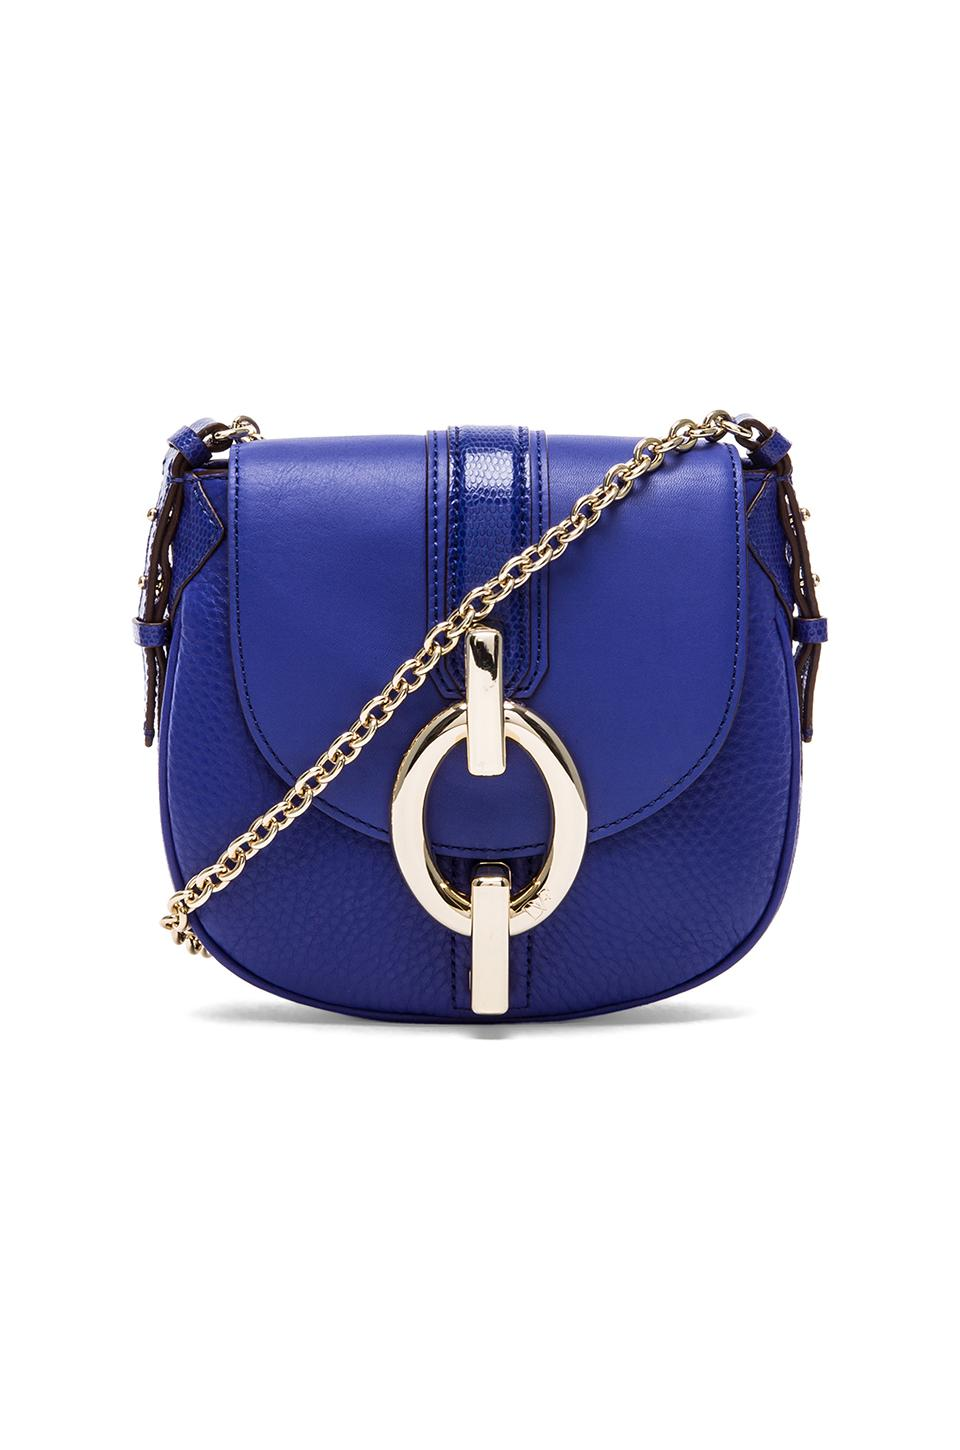 Diane von Furstenberg Sutra Mini Mixed Leather Crossbody in Iris